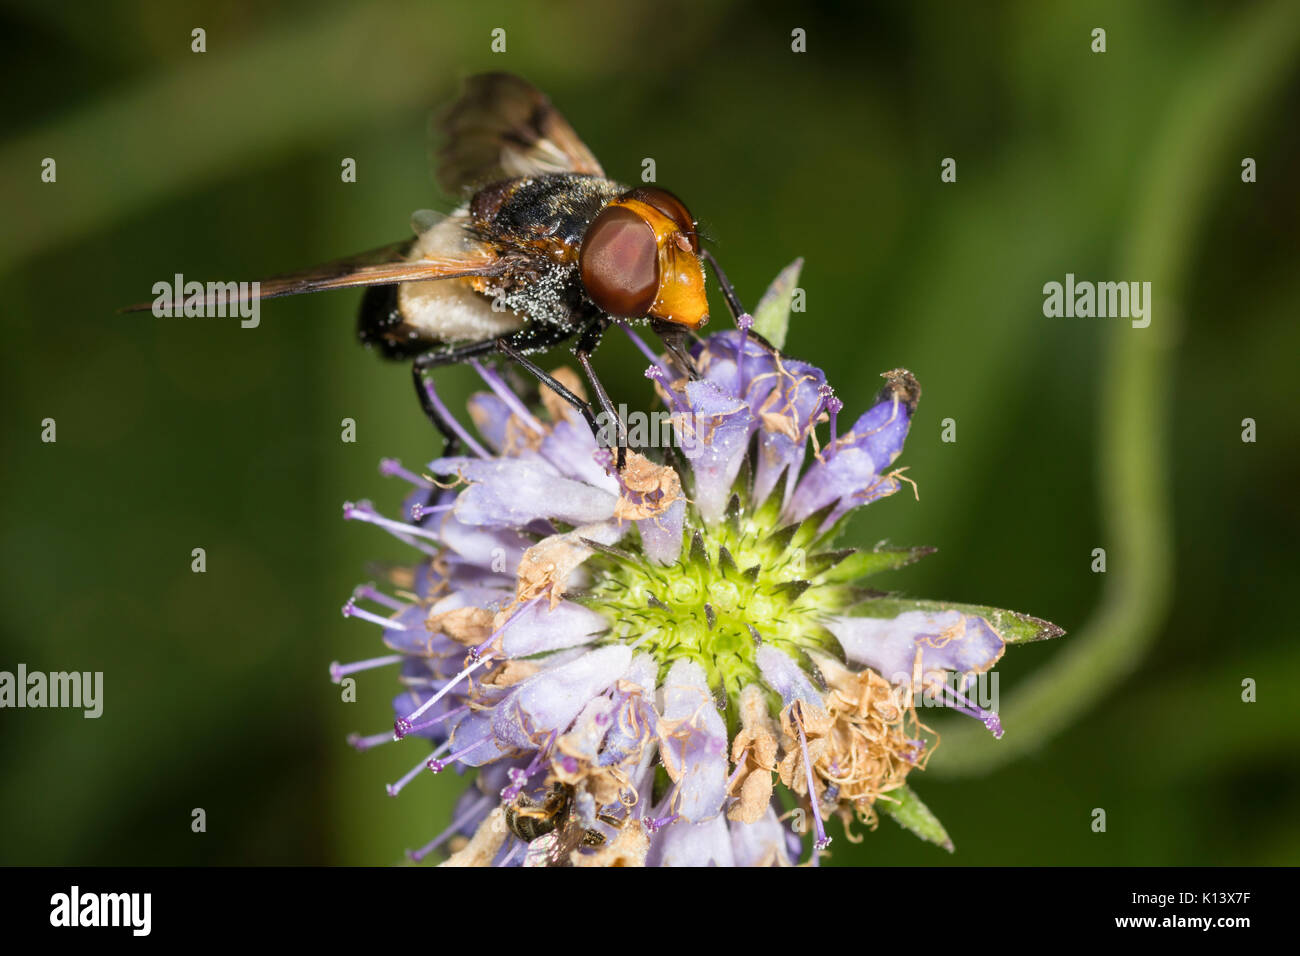 Pellucid hoverfly, Volucella pellucens, feeding on the fading flowers in the head of Devil's bit scabious, Succisa pratensis - Stock Image